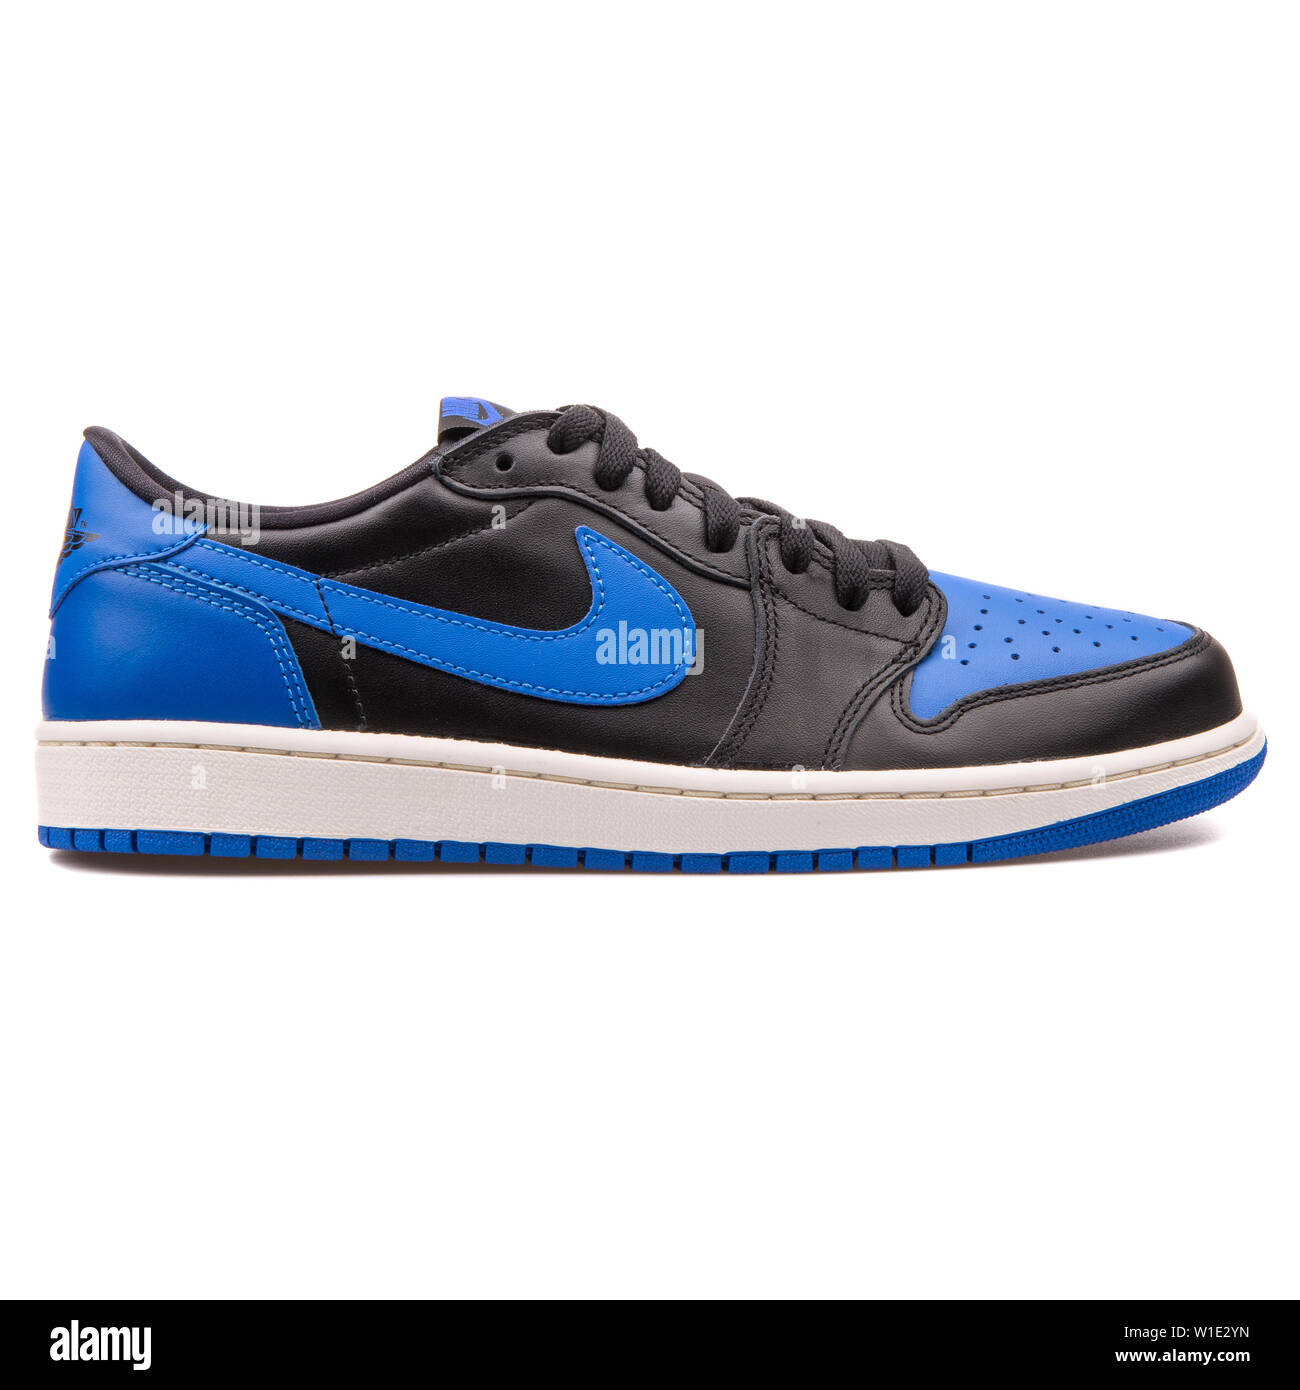 Noche tema Subproducto  VIENNA, AUSTRIA - AUGUST 25, 2017: Nike Air Jordan 1 Retro Low OG black and  blue sneaker on white background Stock Photo - Alamy